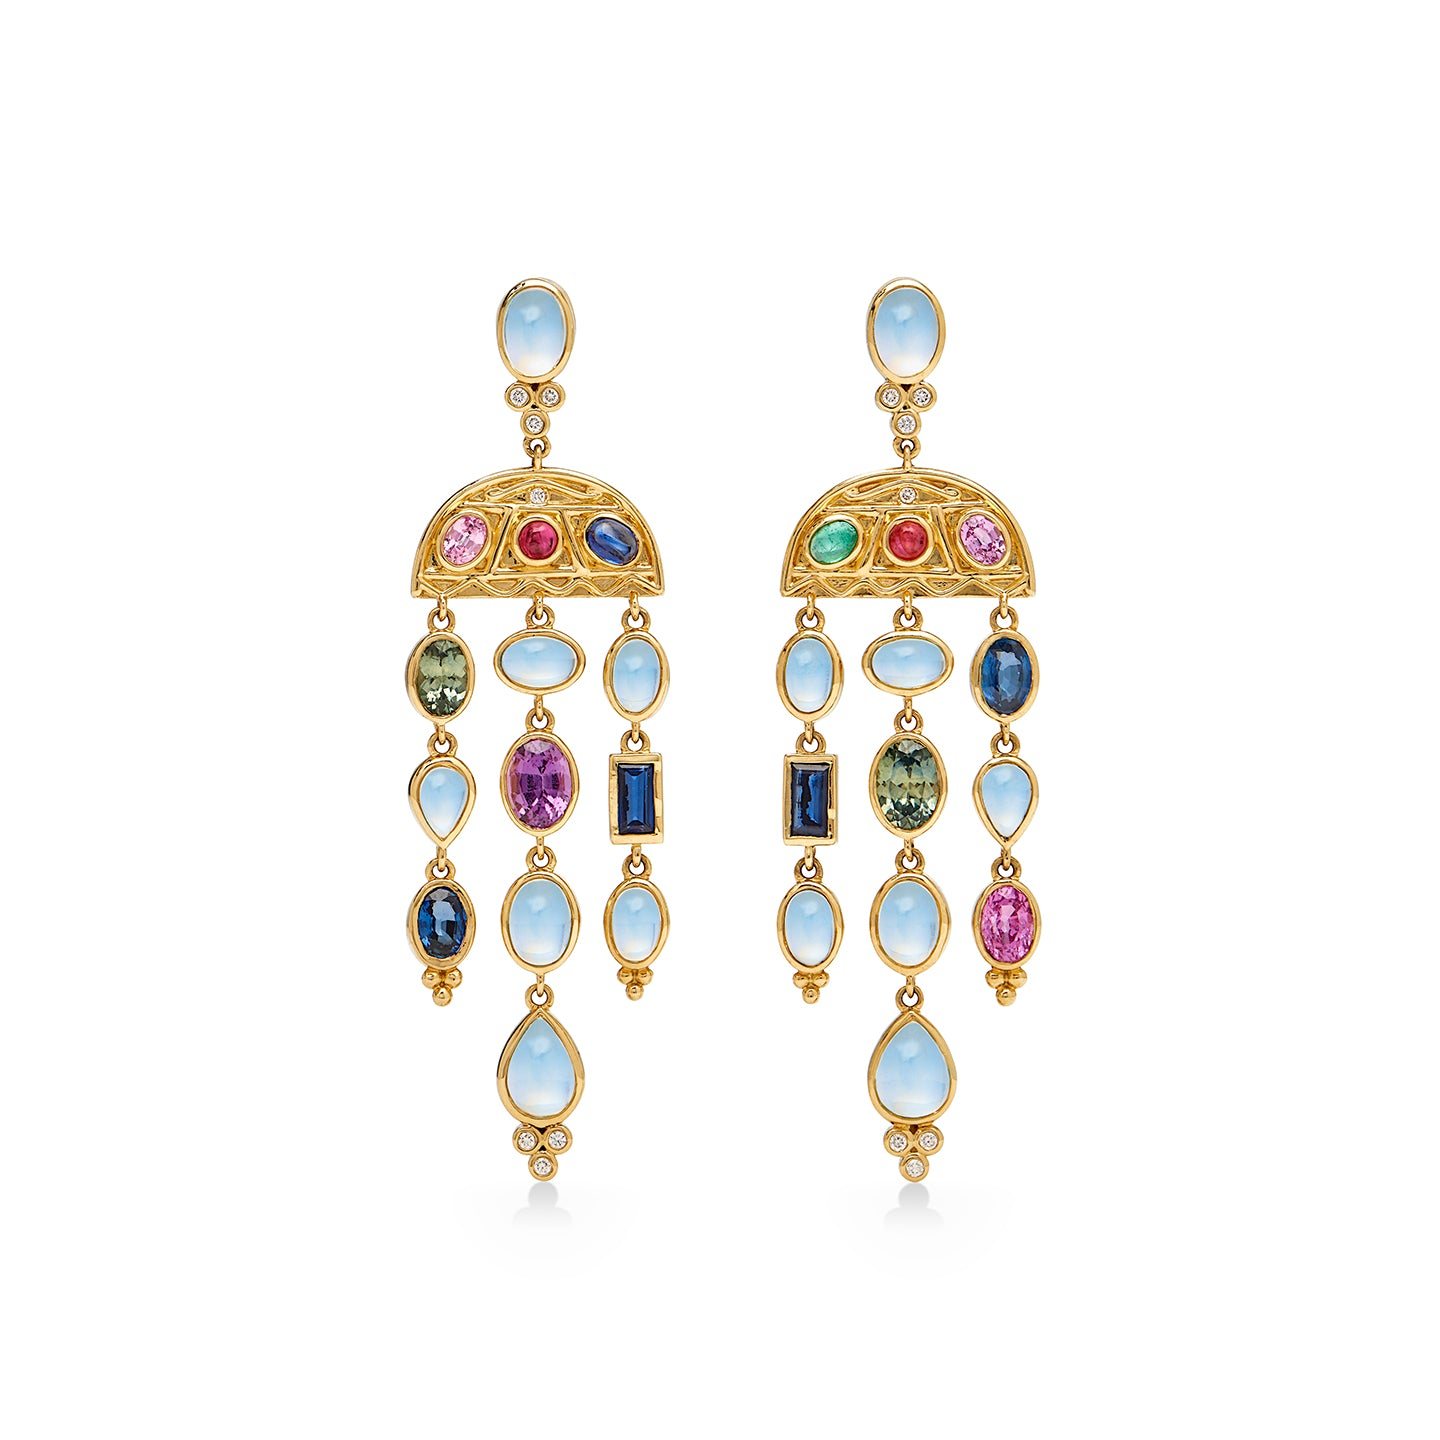 18K Theodora Crescent Drop Earrings